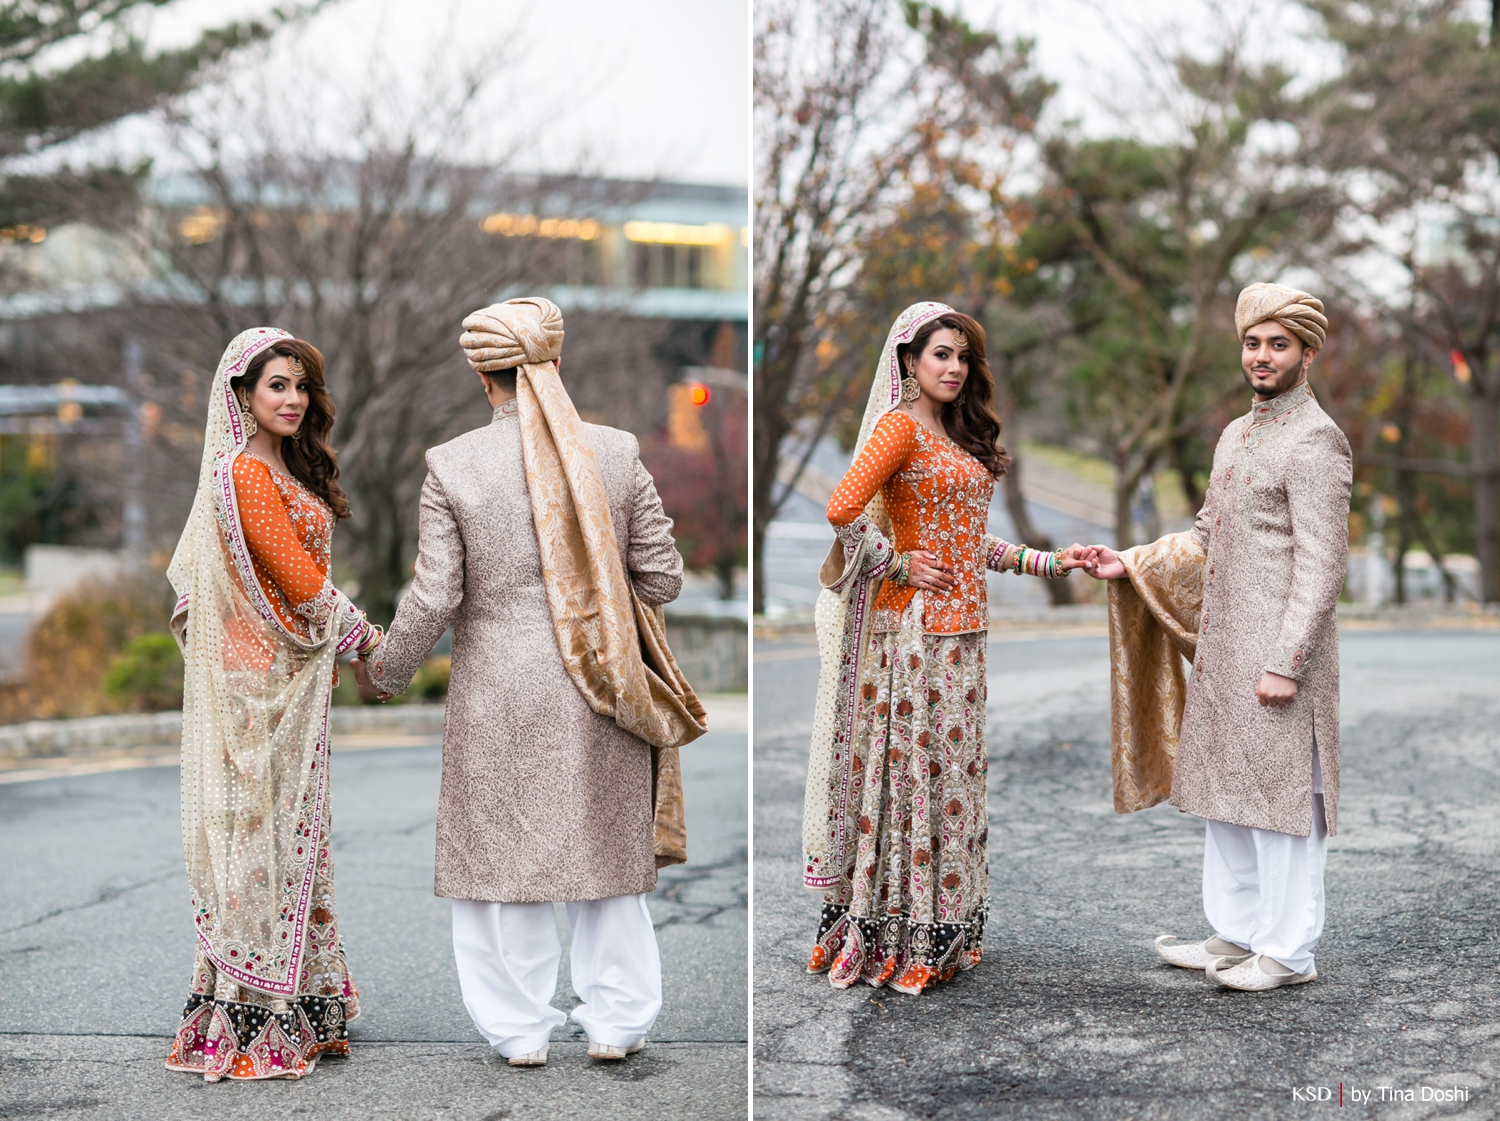 nj_south_asian_wedding_0022